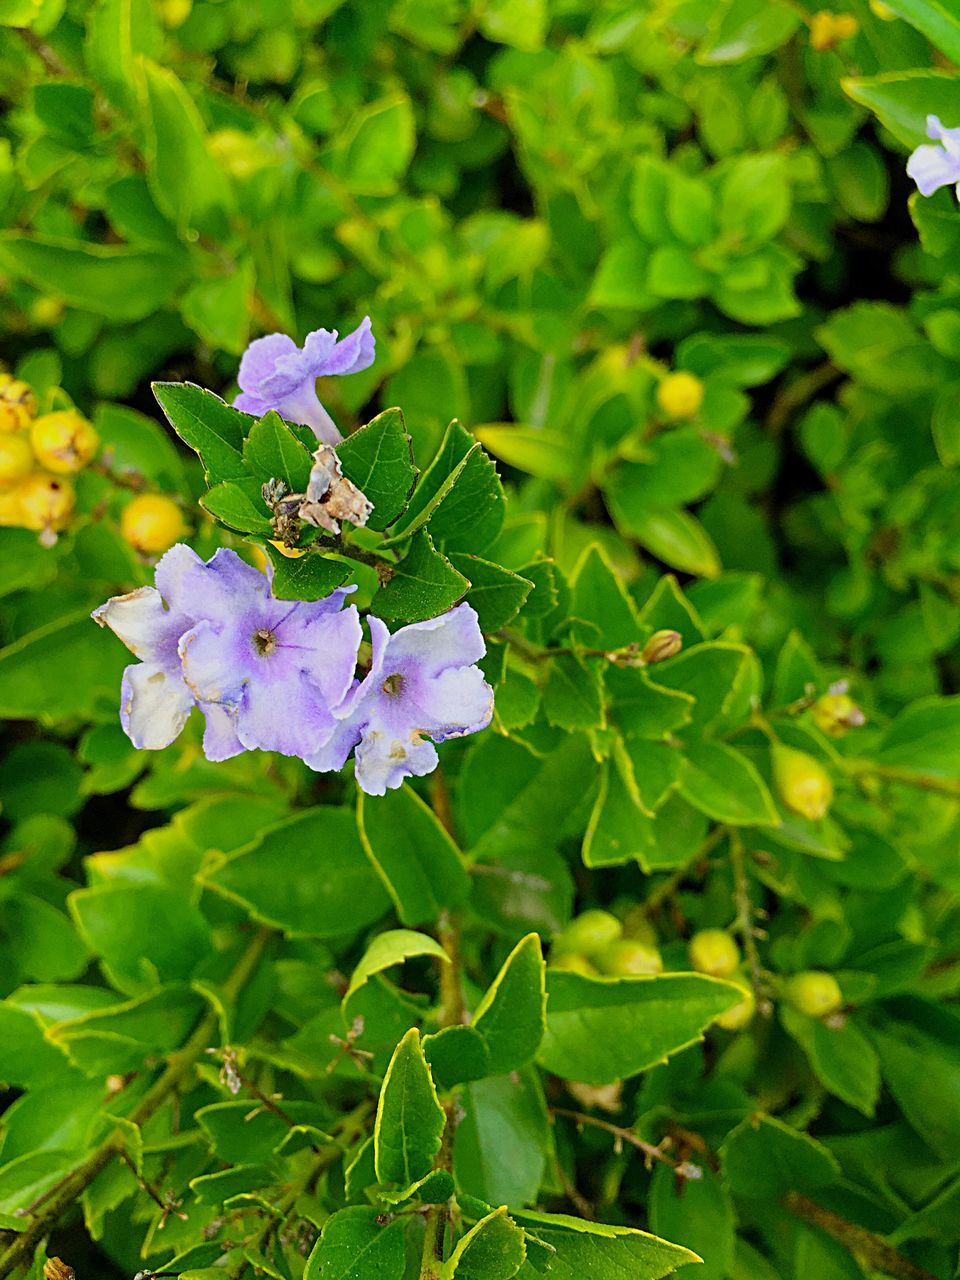 flower, growth, beauty in nature, nature, green color, fragility, petal, freshness, plant, purple, leaf, day, flower head, outdoors, no people, close-up, focus on foreground, blooming